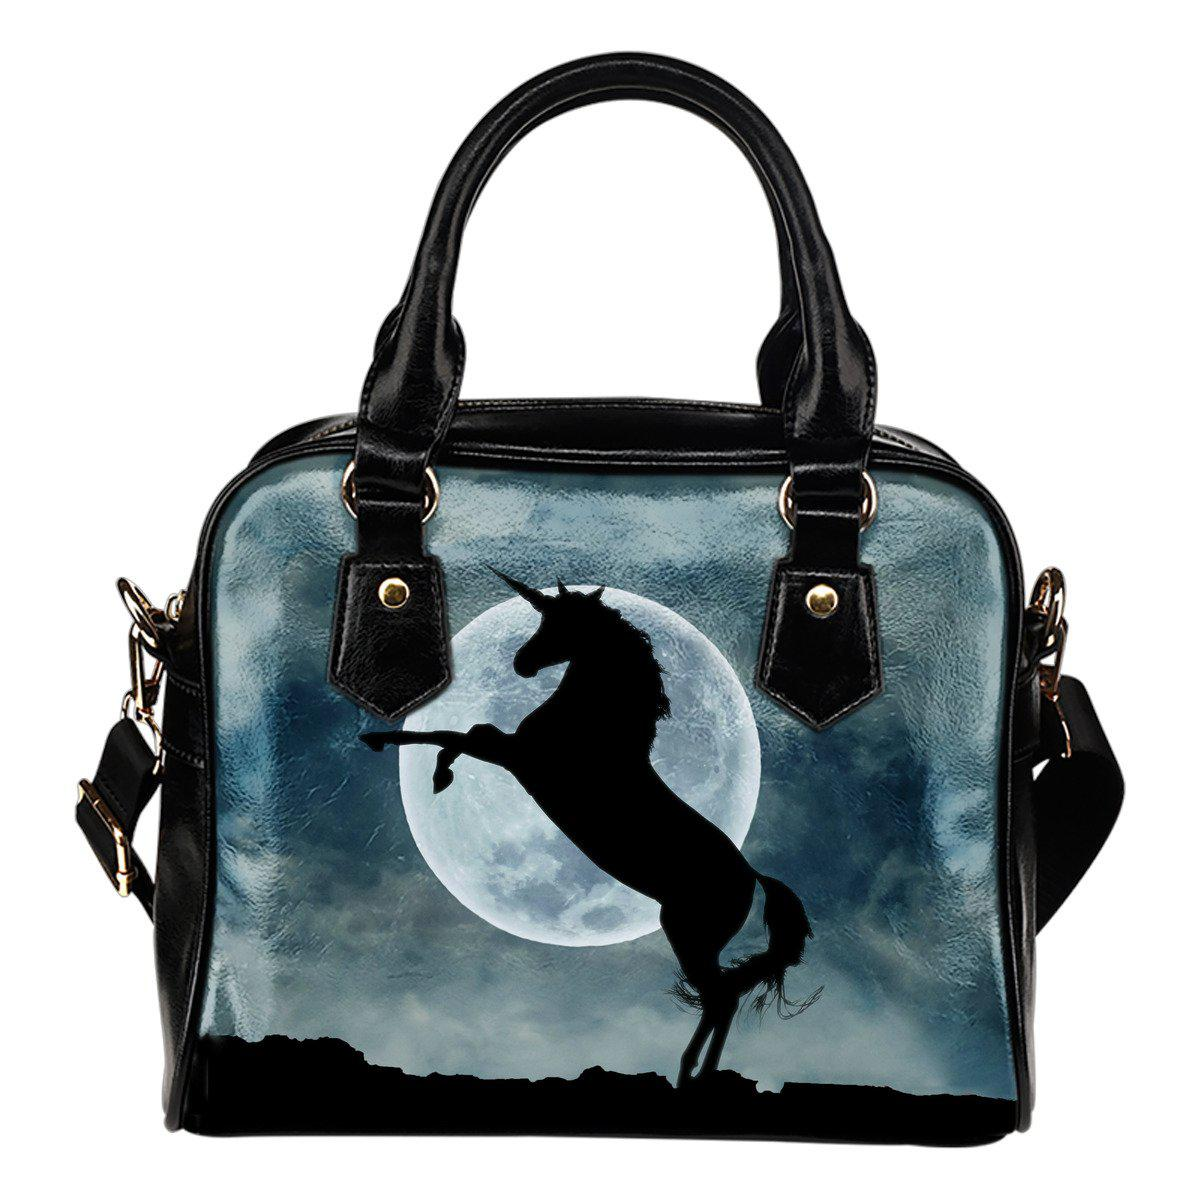 Shopeholic:Moonlight Unicorn Leather Handbag